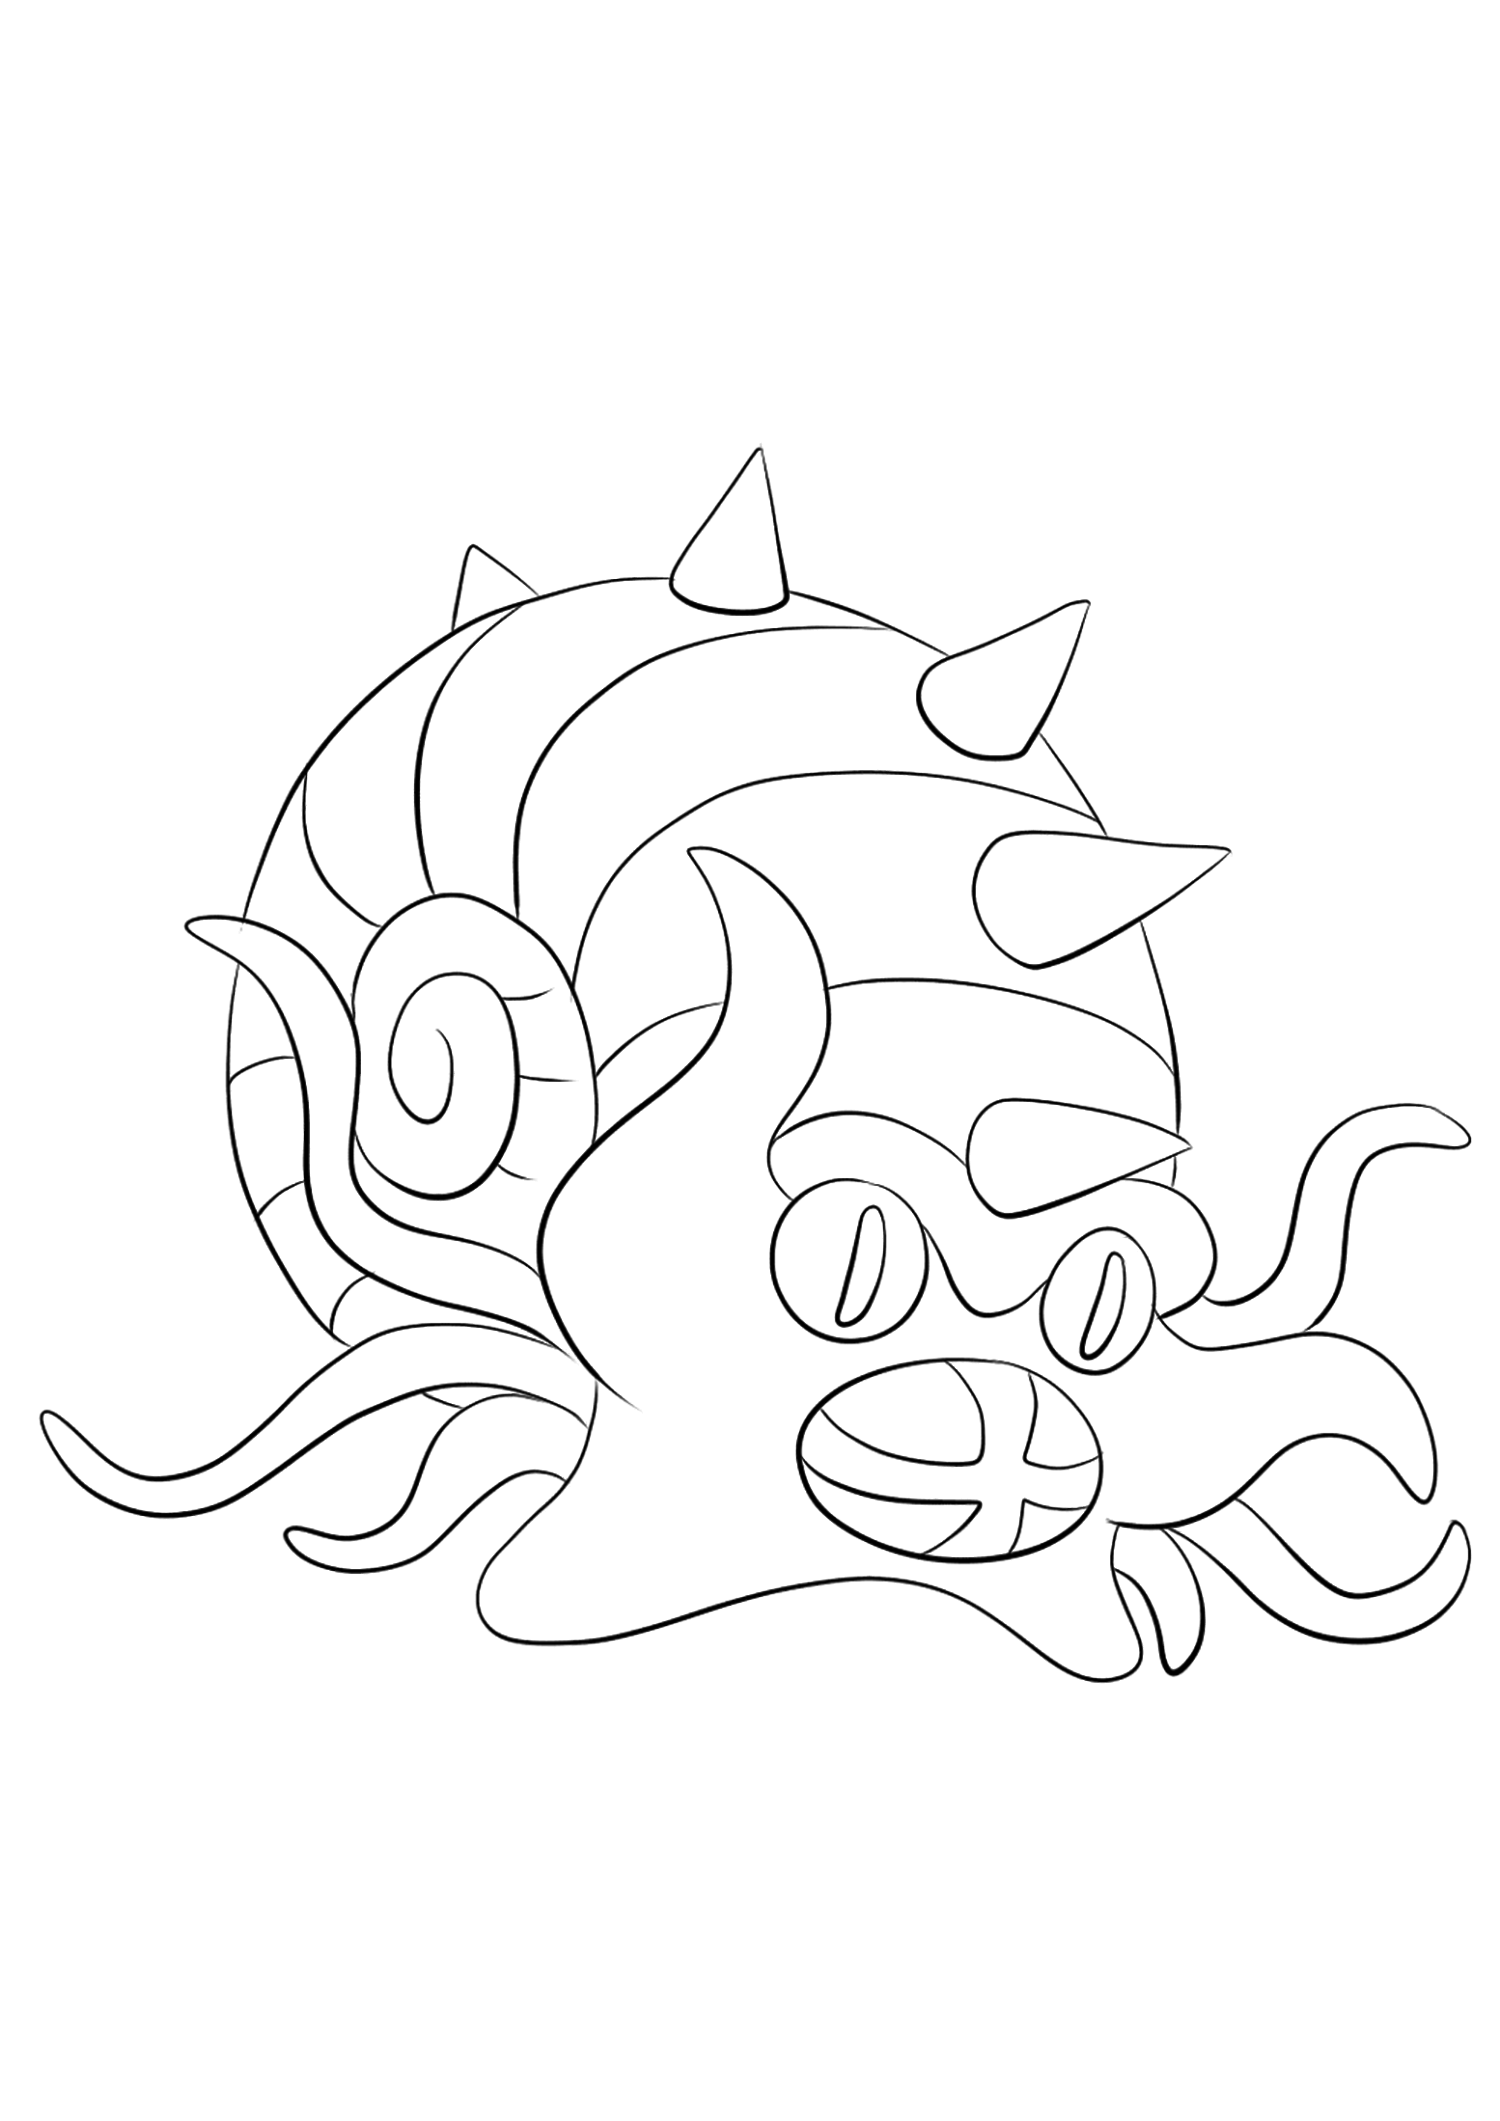 Amonistar (No.139)Coloriage de Amonistar (Omastar), Pokémon de Génération I, de type : Roche et EauOriginal image credit: Pokemon linearts by Lilly Gerbil on Deviantart.Permission:  All rights reserved © Pokemon company and Ken Sugimori.